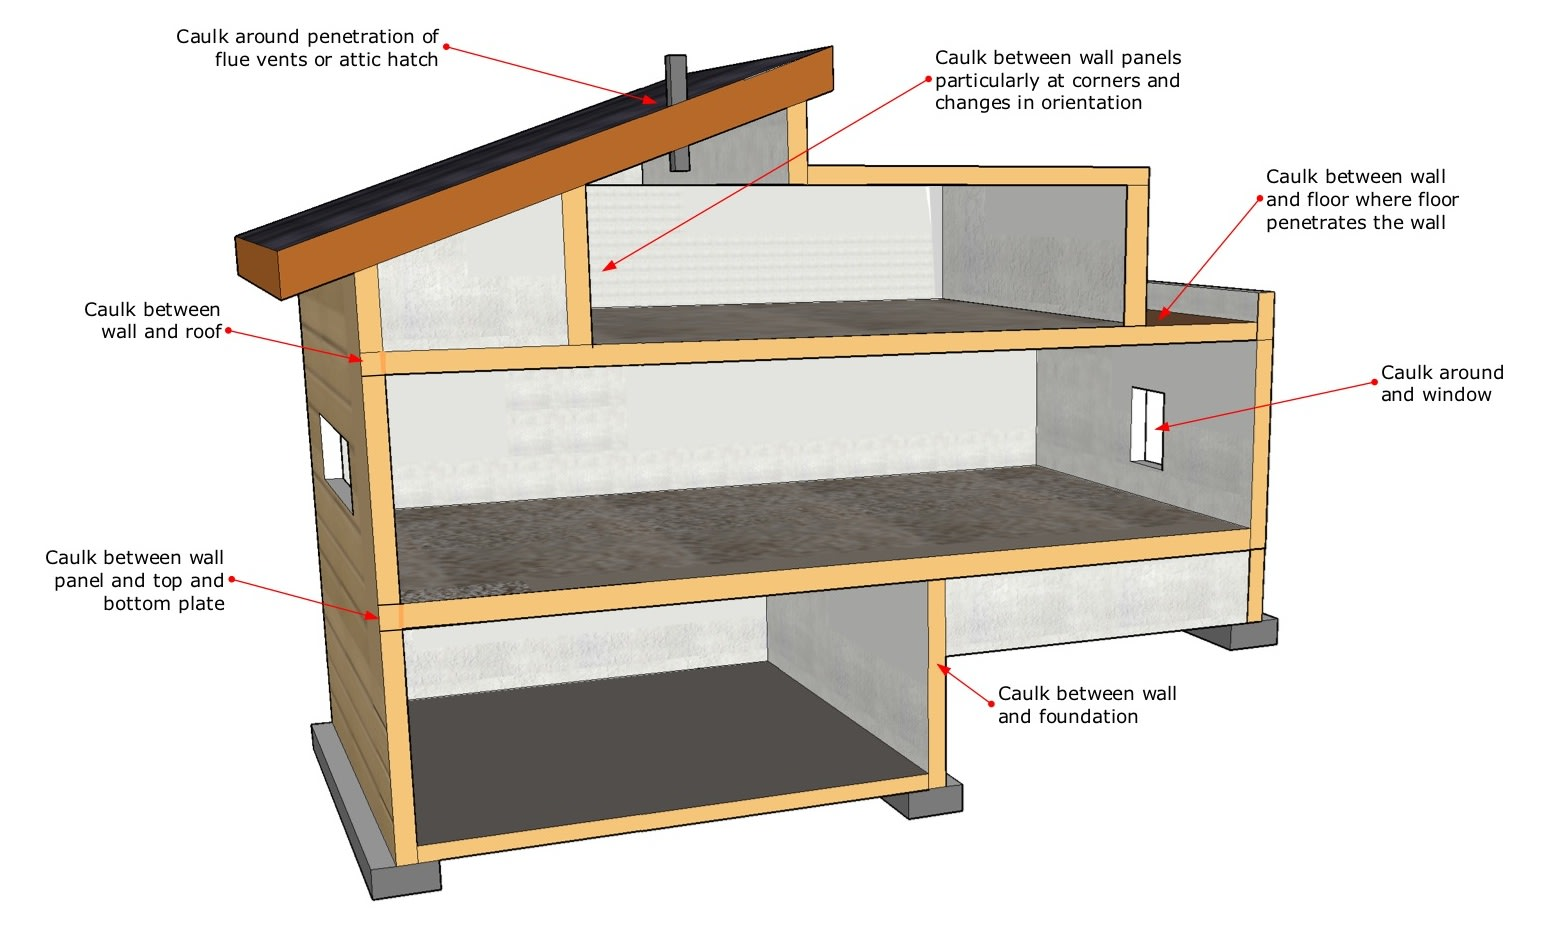 Air leakage locations.